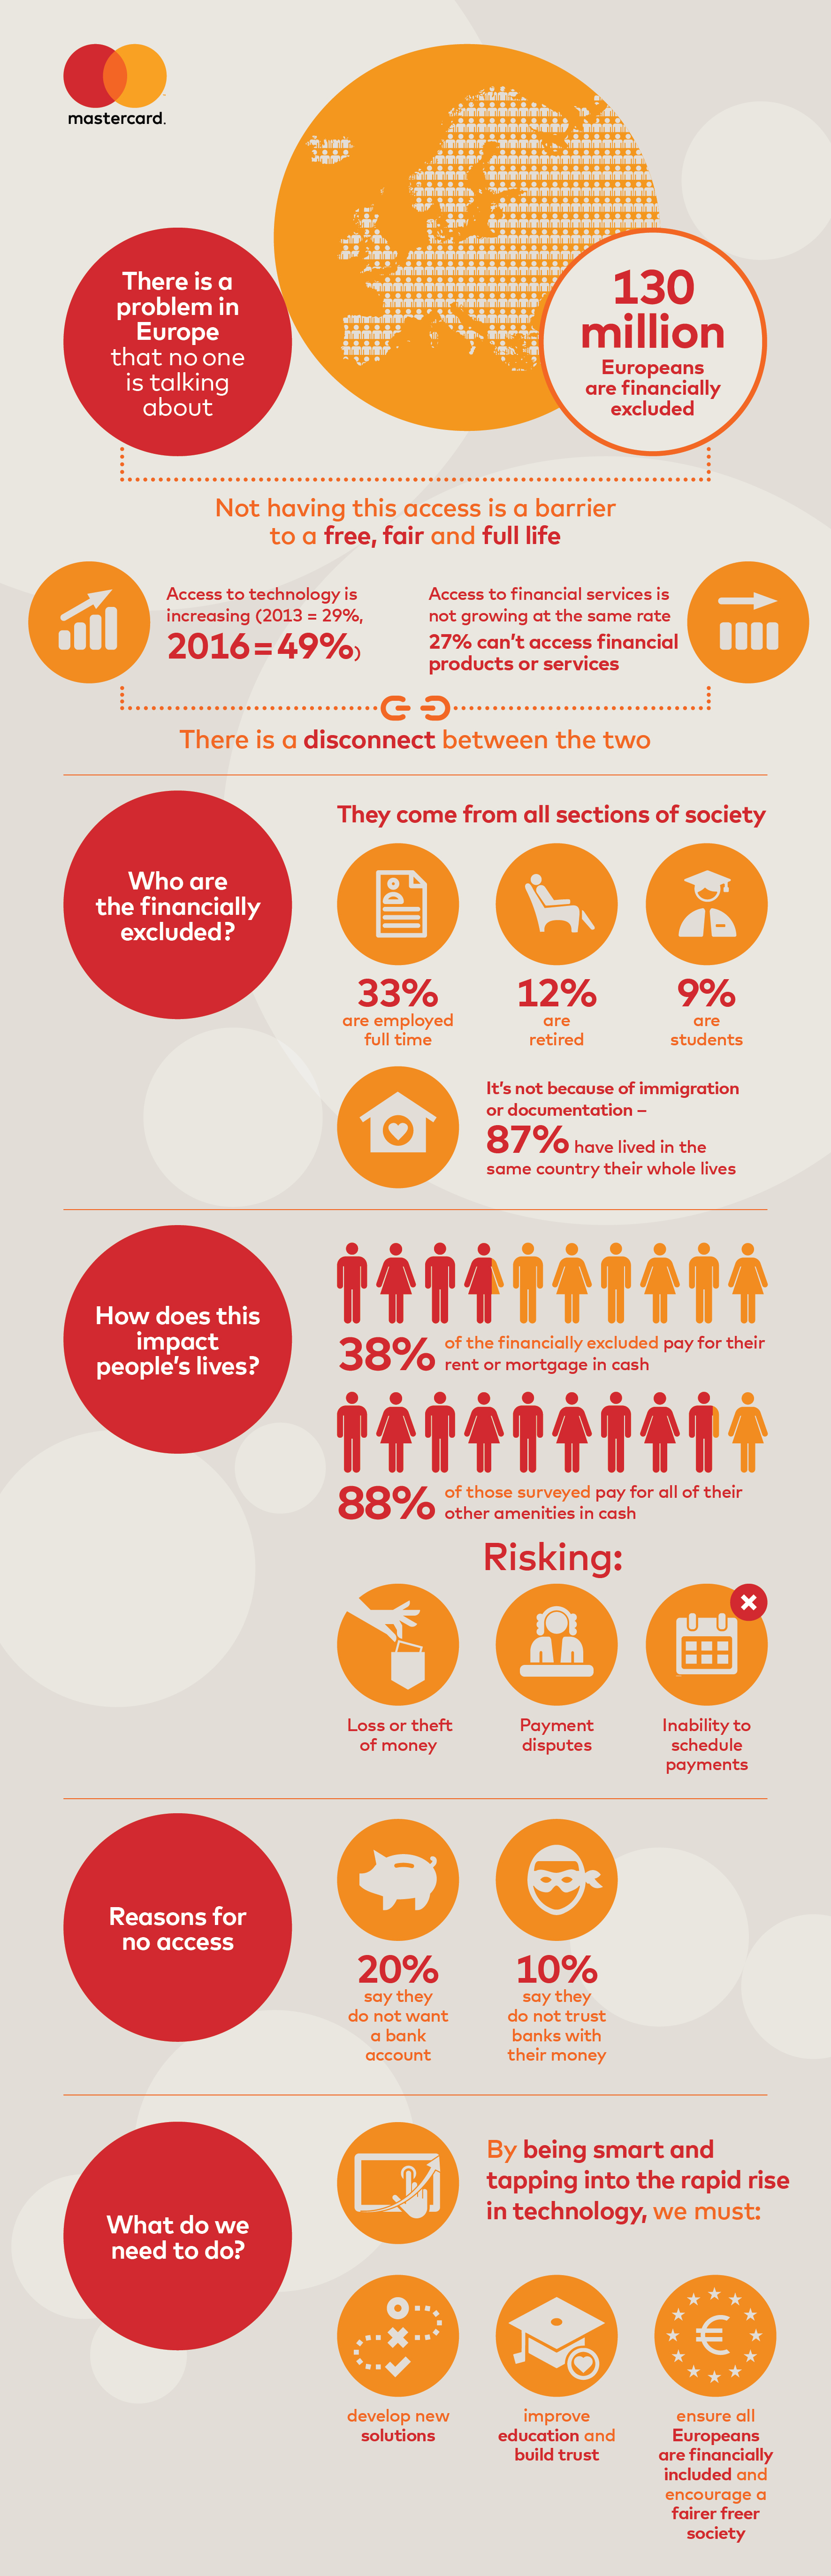 mastercard-europe-financial-inclusion-report-infographic